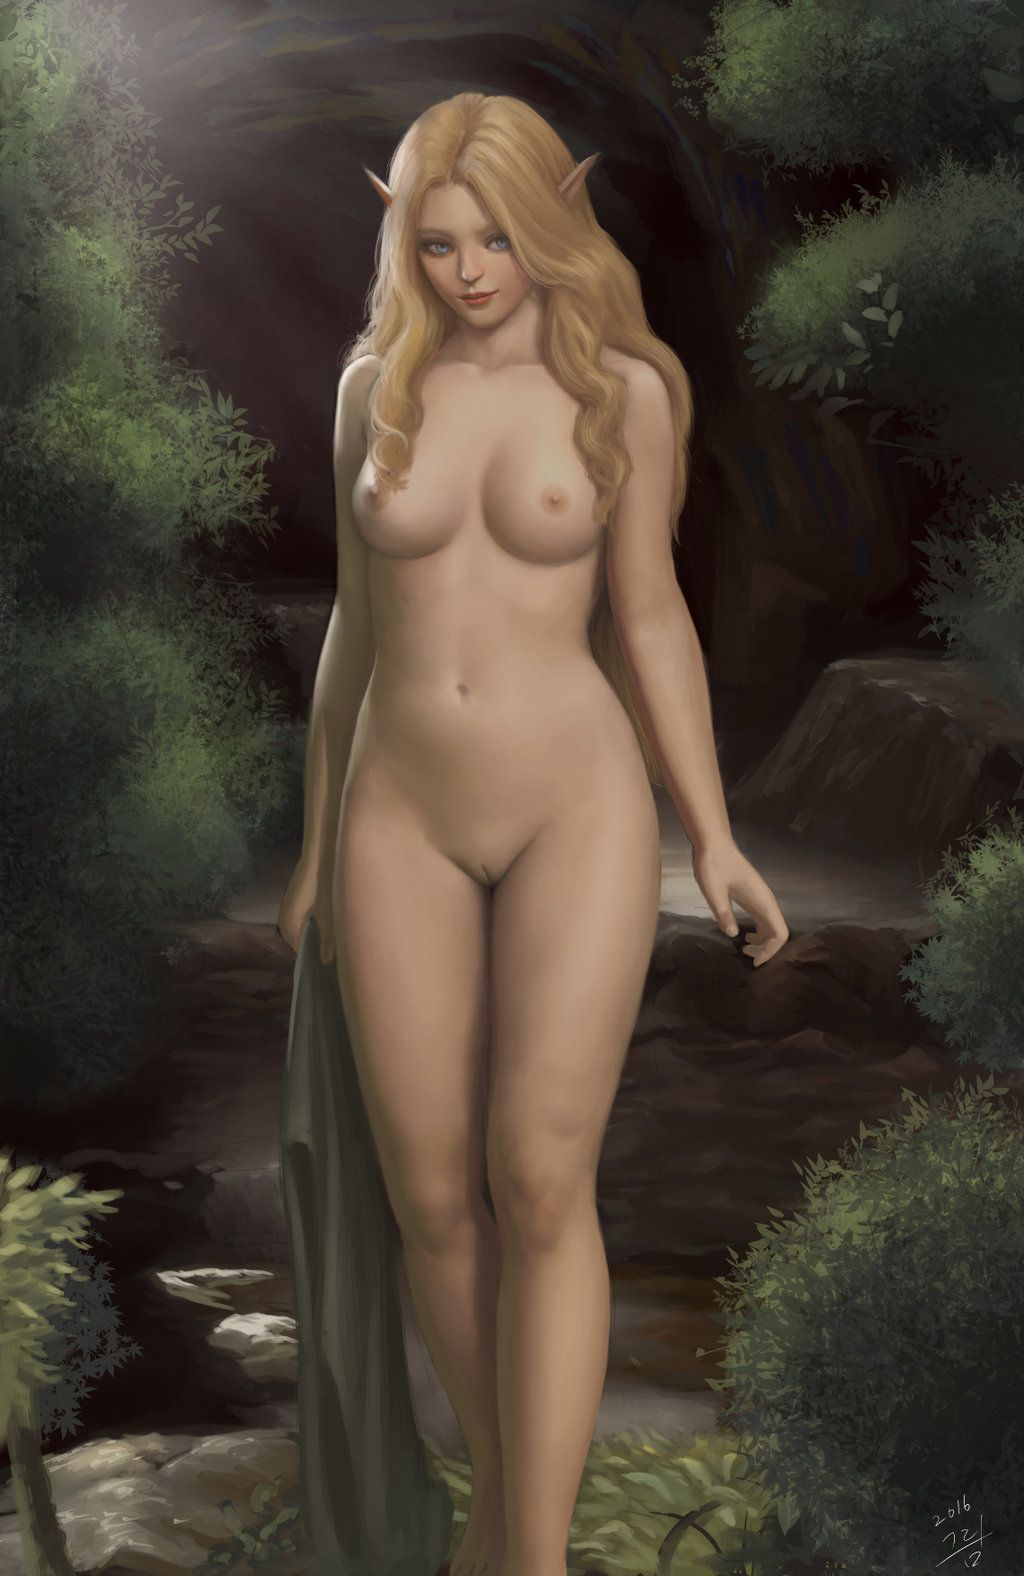 from Rocky naked night elf females